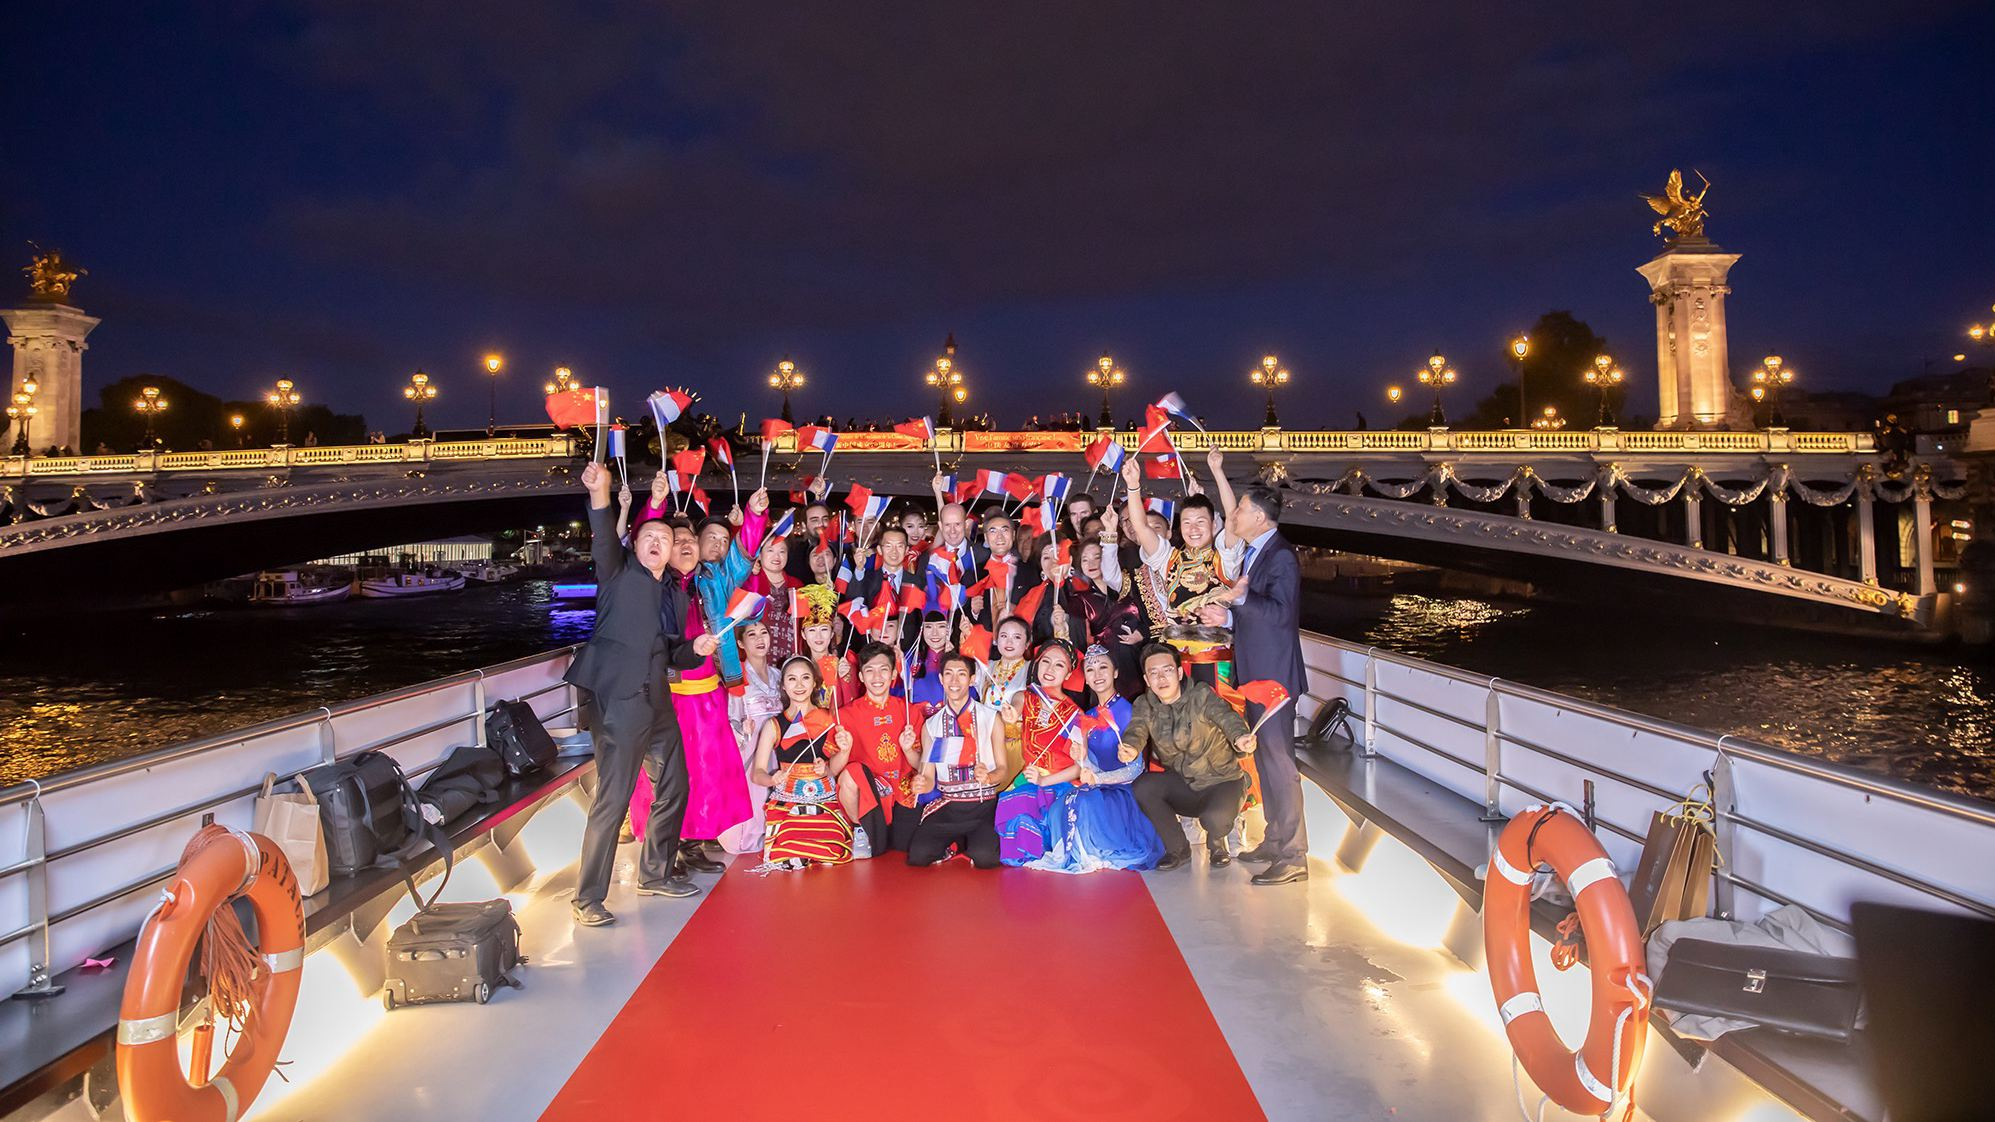 Gala held on Seine to mark the 70th anniversary of PRC's founding